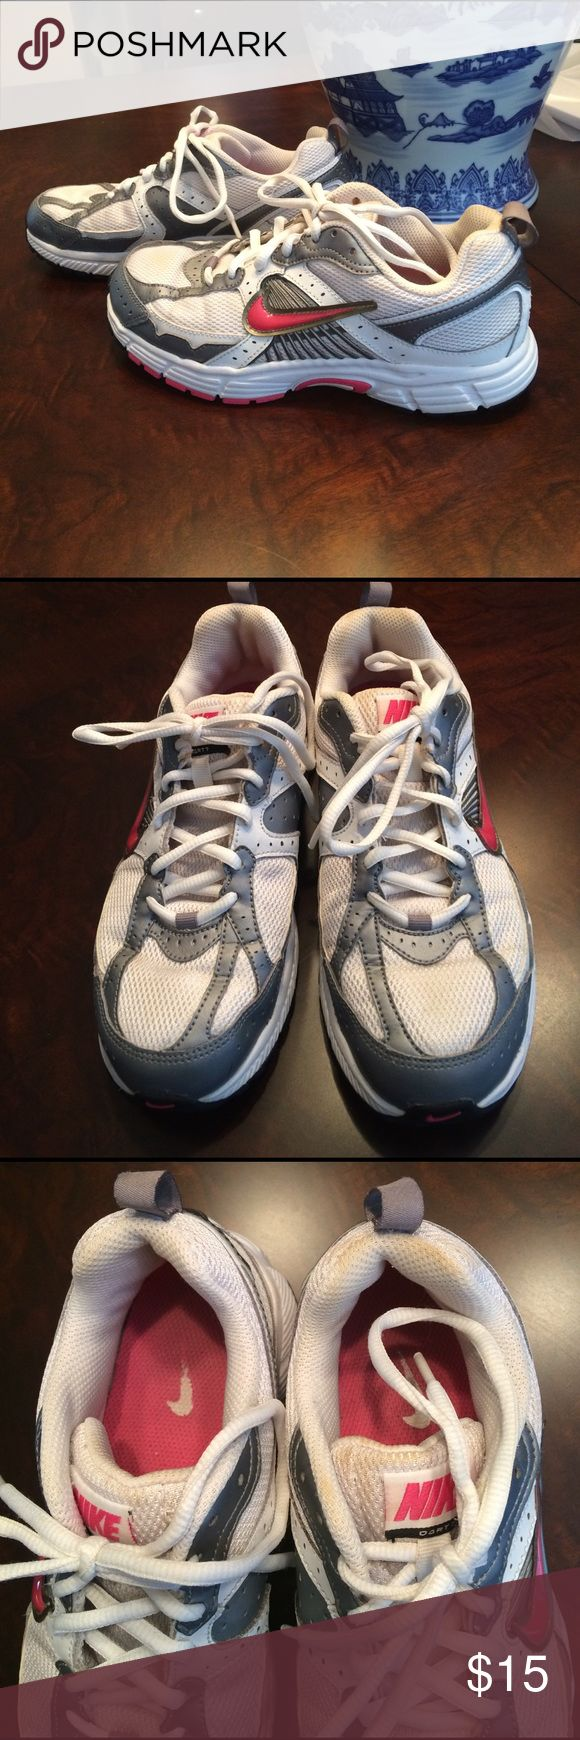 EUC! Girls Nike shoes, 5Y. Wonderful condition girls Nikes shoes. Very very clean. Little bit of markings on front of tongues and back heals. Size, 5Y. Nike Shoes Sneakers